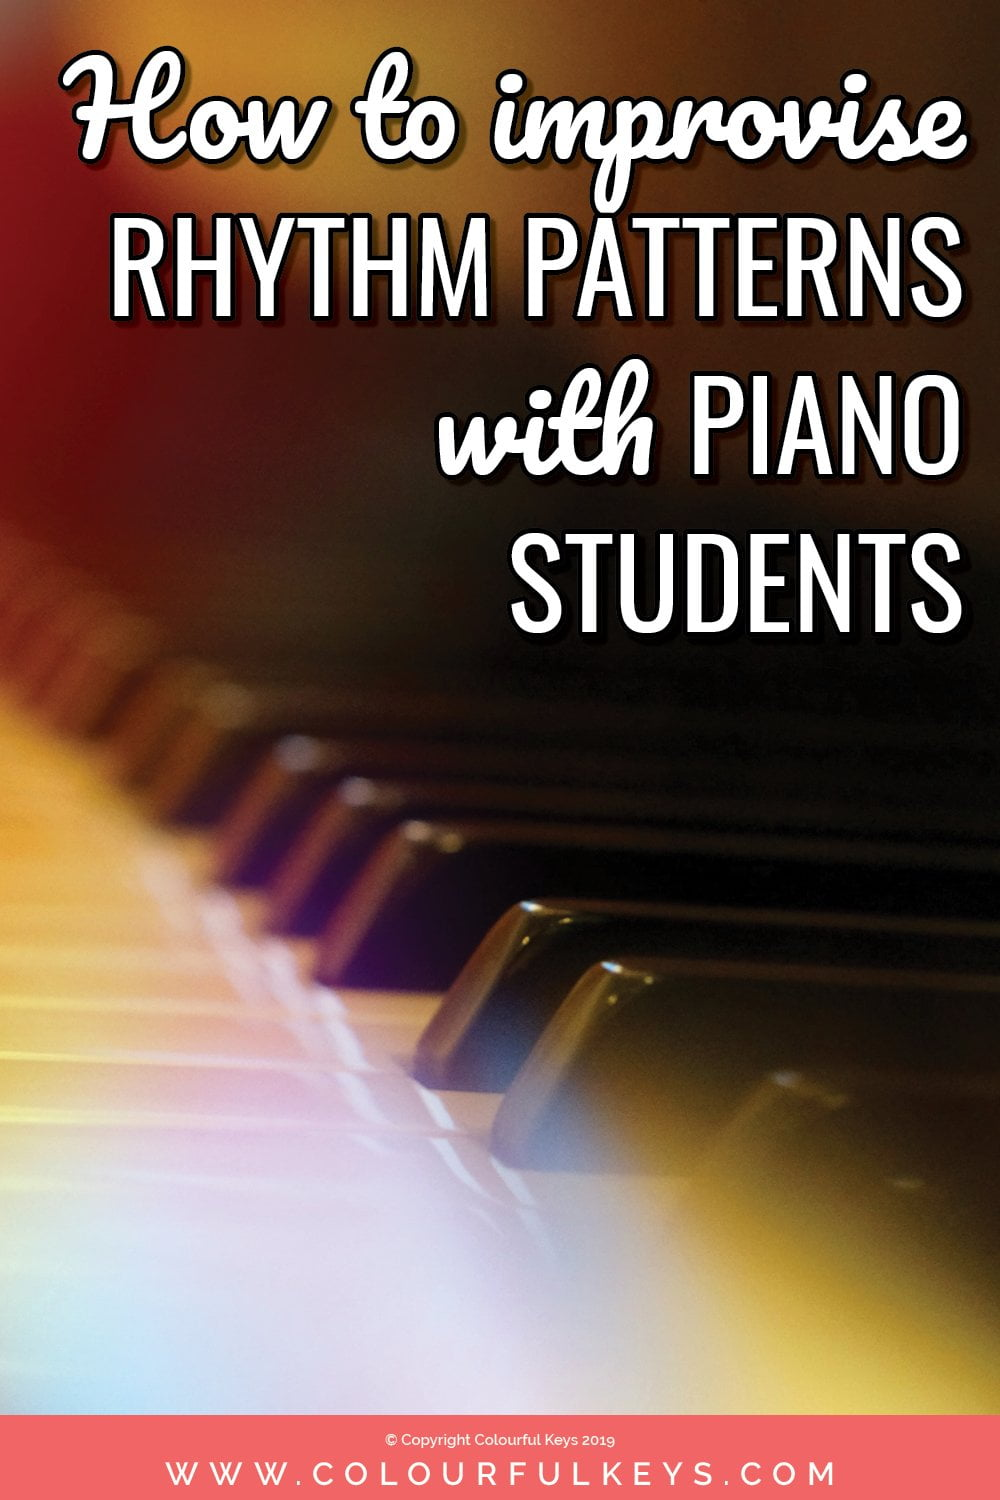 How to use improvisation in your piano lessons to teach rhythm skills - two ideas to try!